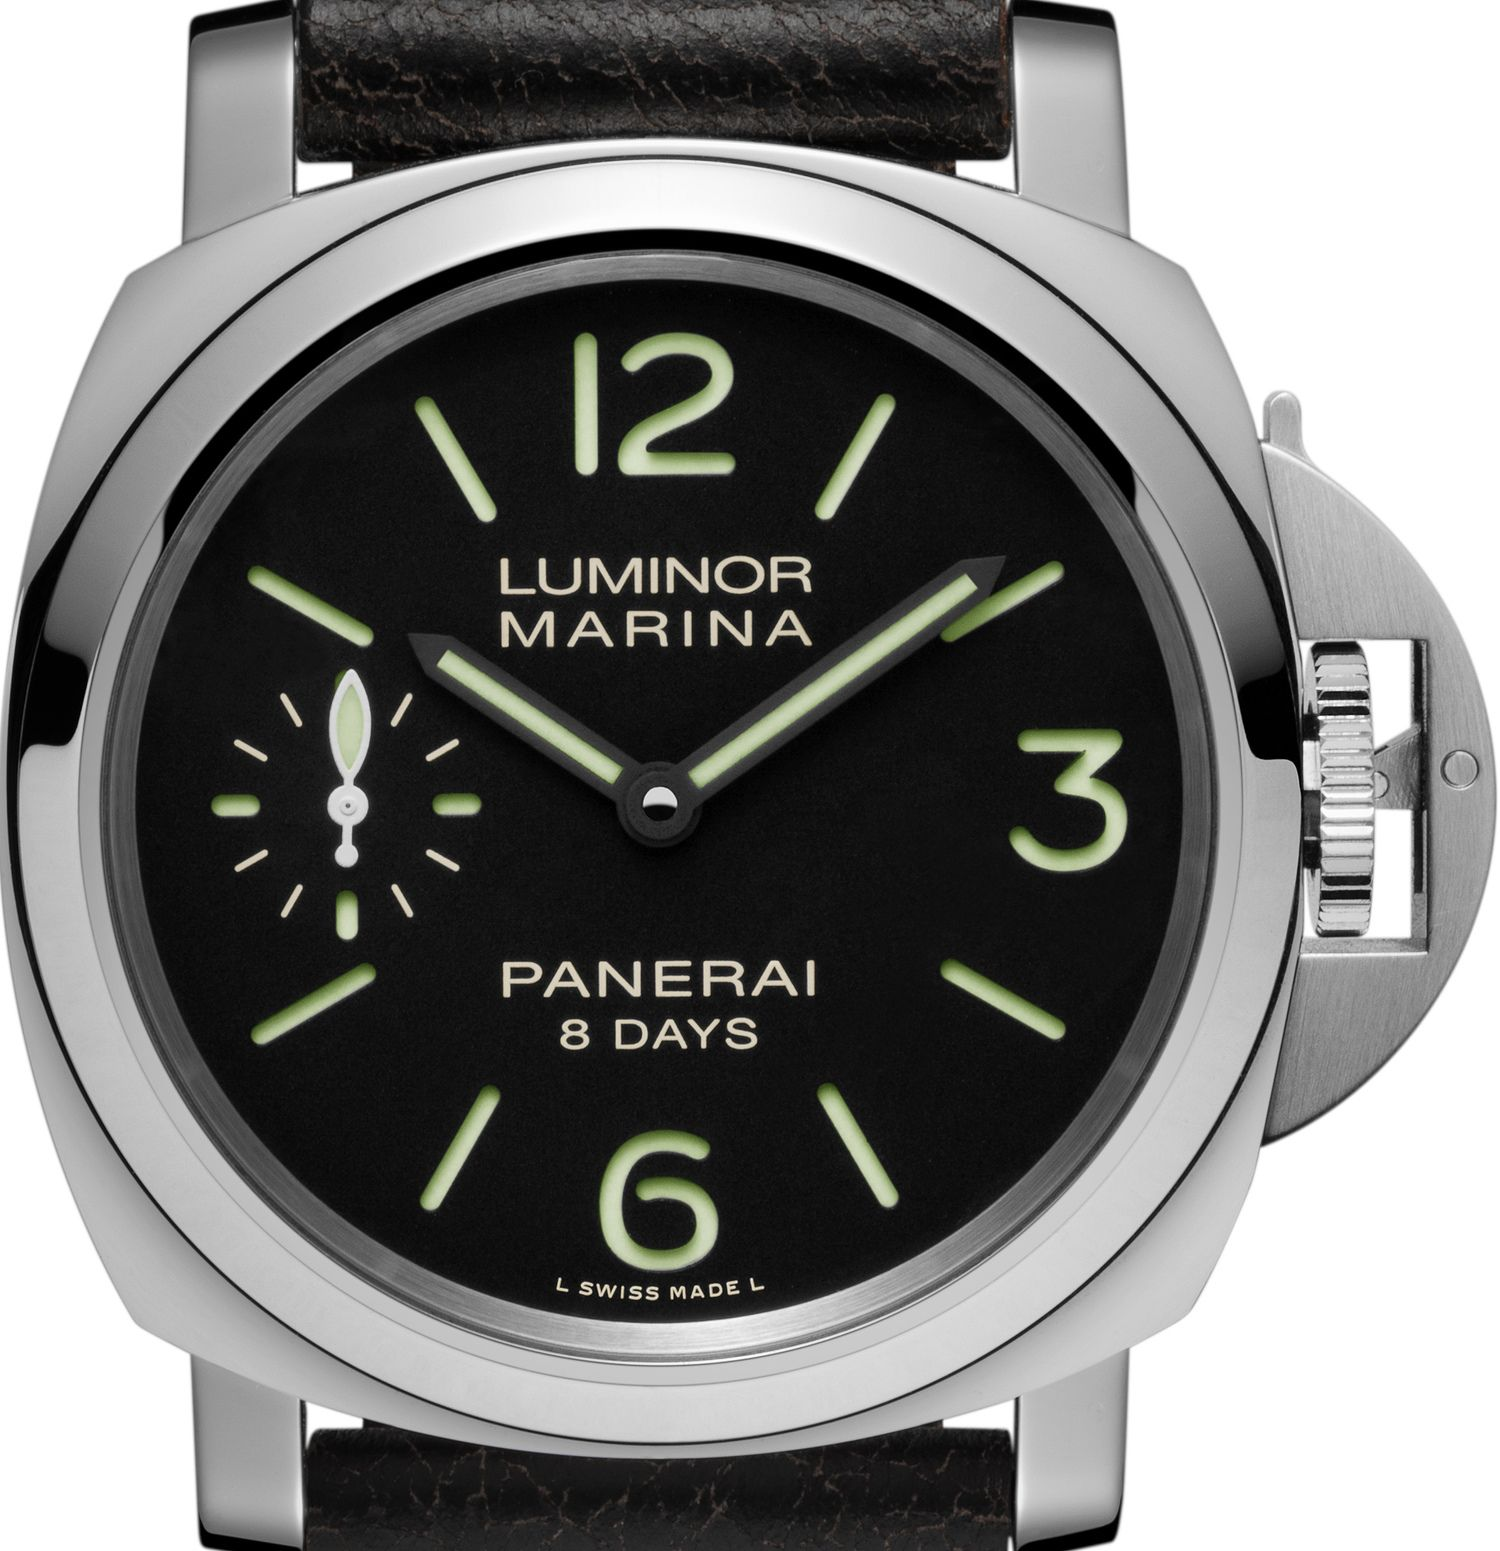 Introducing The Panerai PAM 510 Luminor Marina 8 Days With Caliber P.5000: A New In-House Guy For Under $8000 —